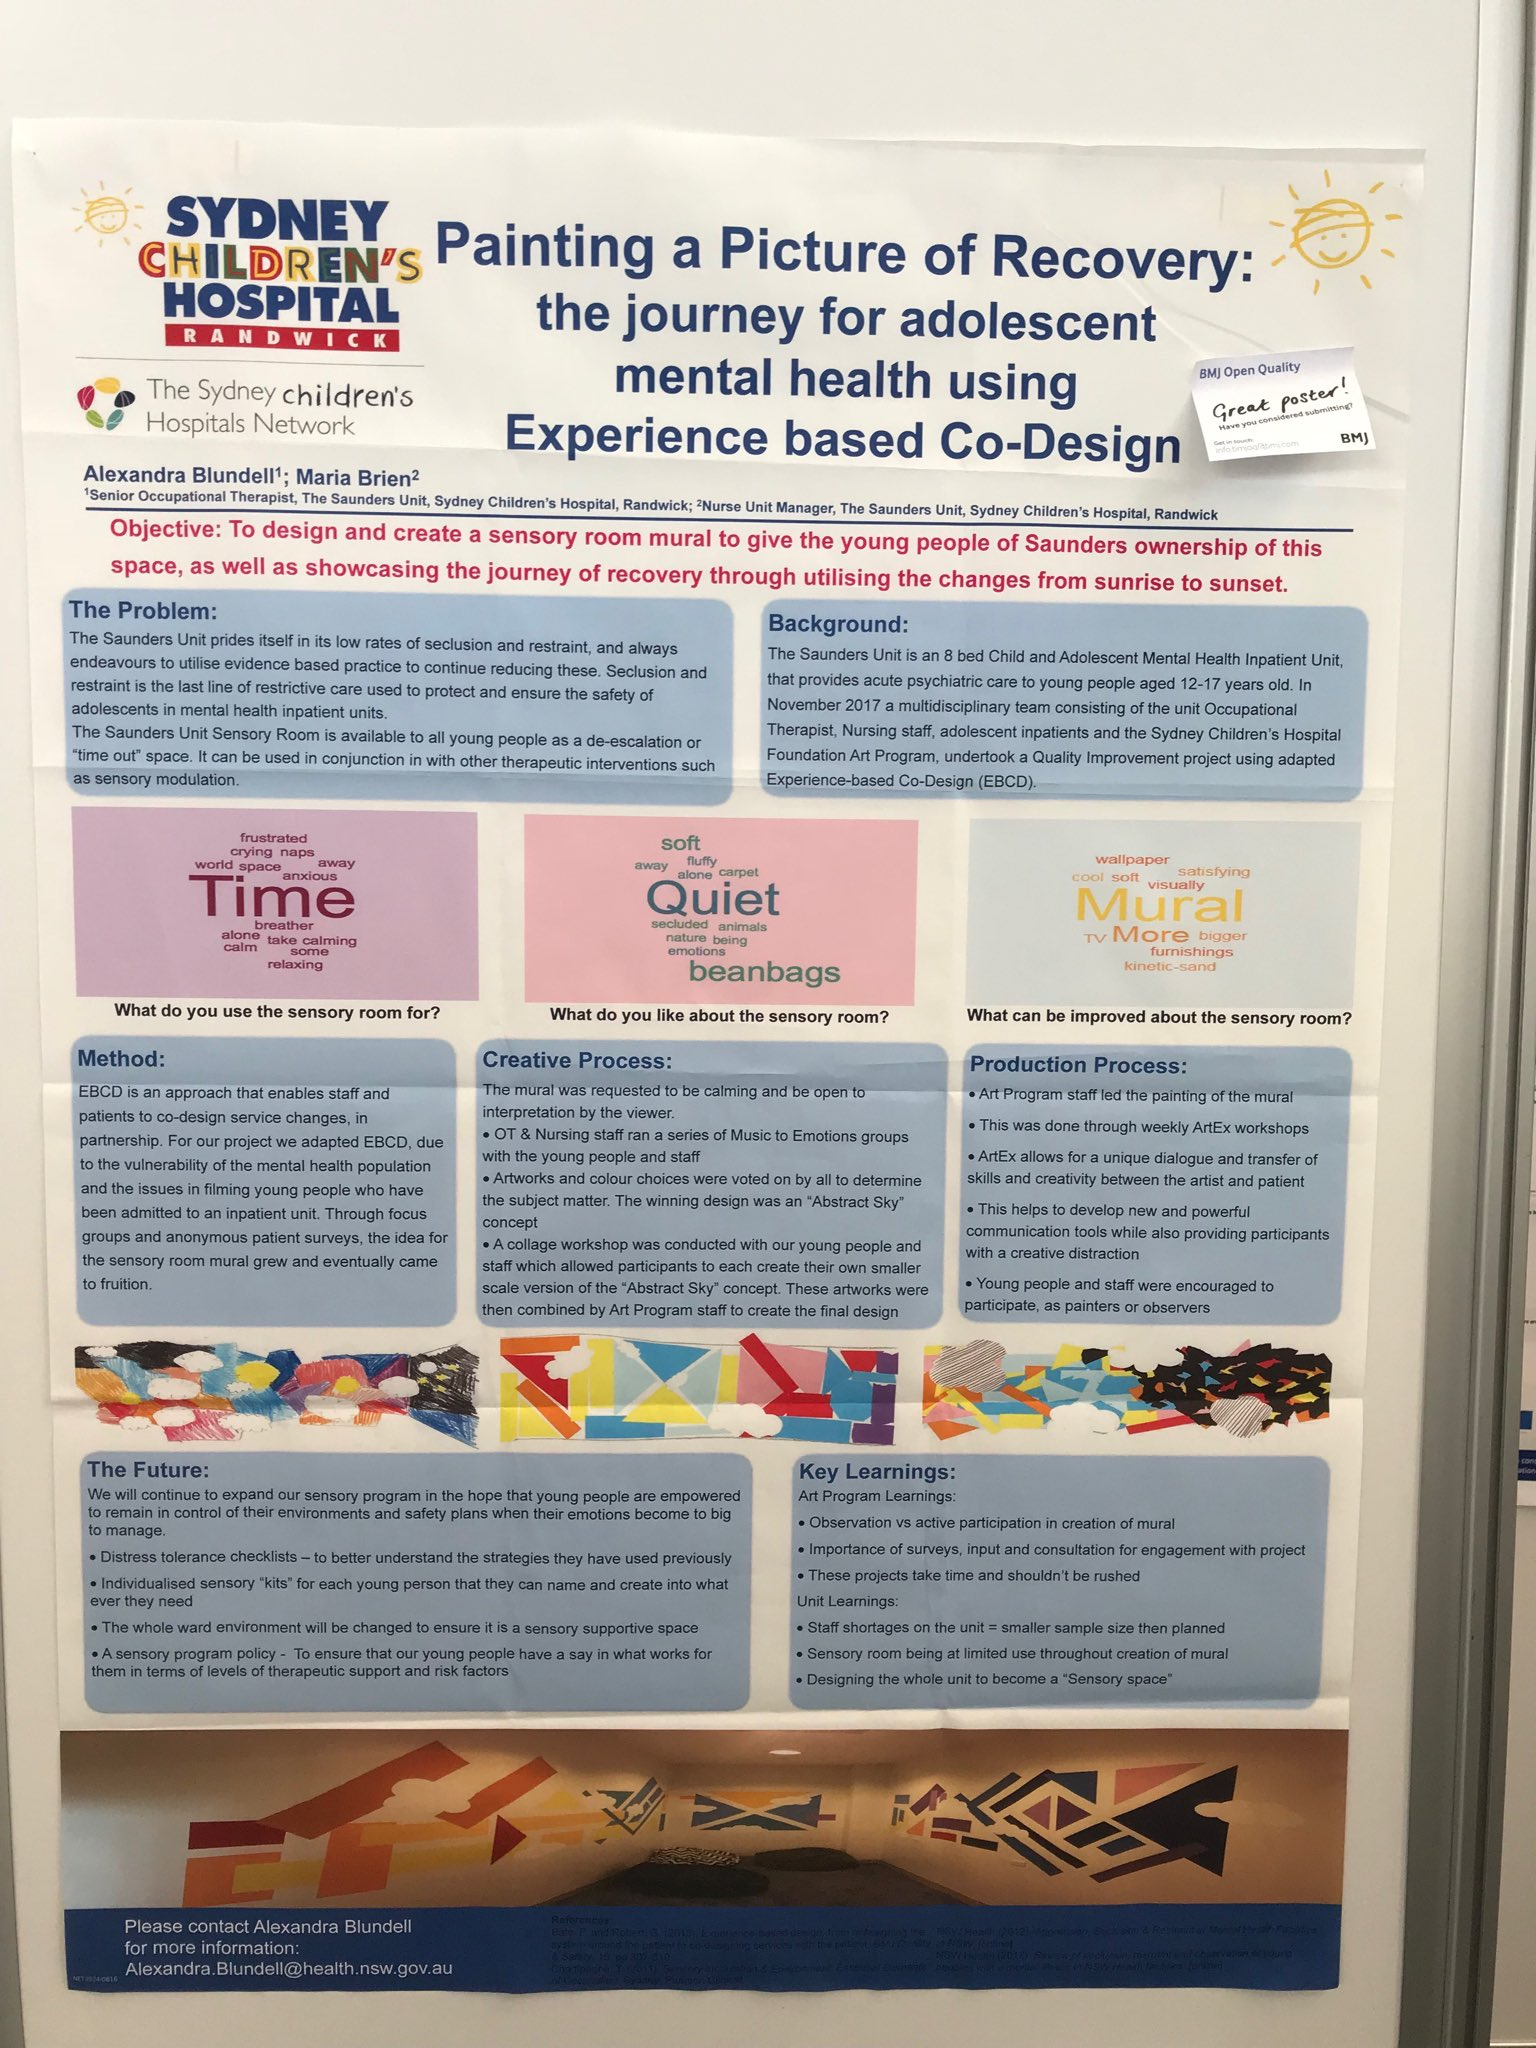 Childrens Healthcare Australasia On Twitter With Co Design Partnering With Patients A Key Theme Quality2018 This Is A Great Practical Example Of Co Design By The Team Providing Mental Health Care To Young